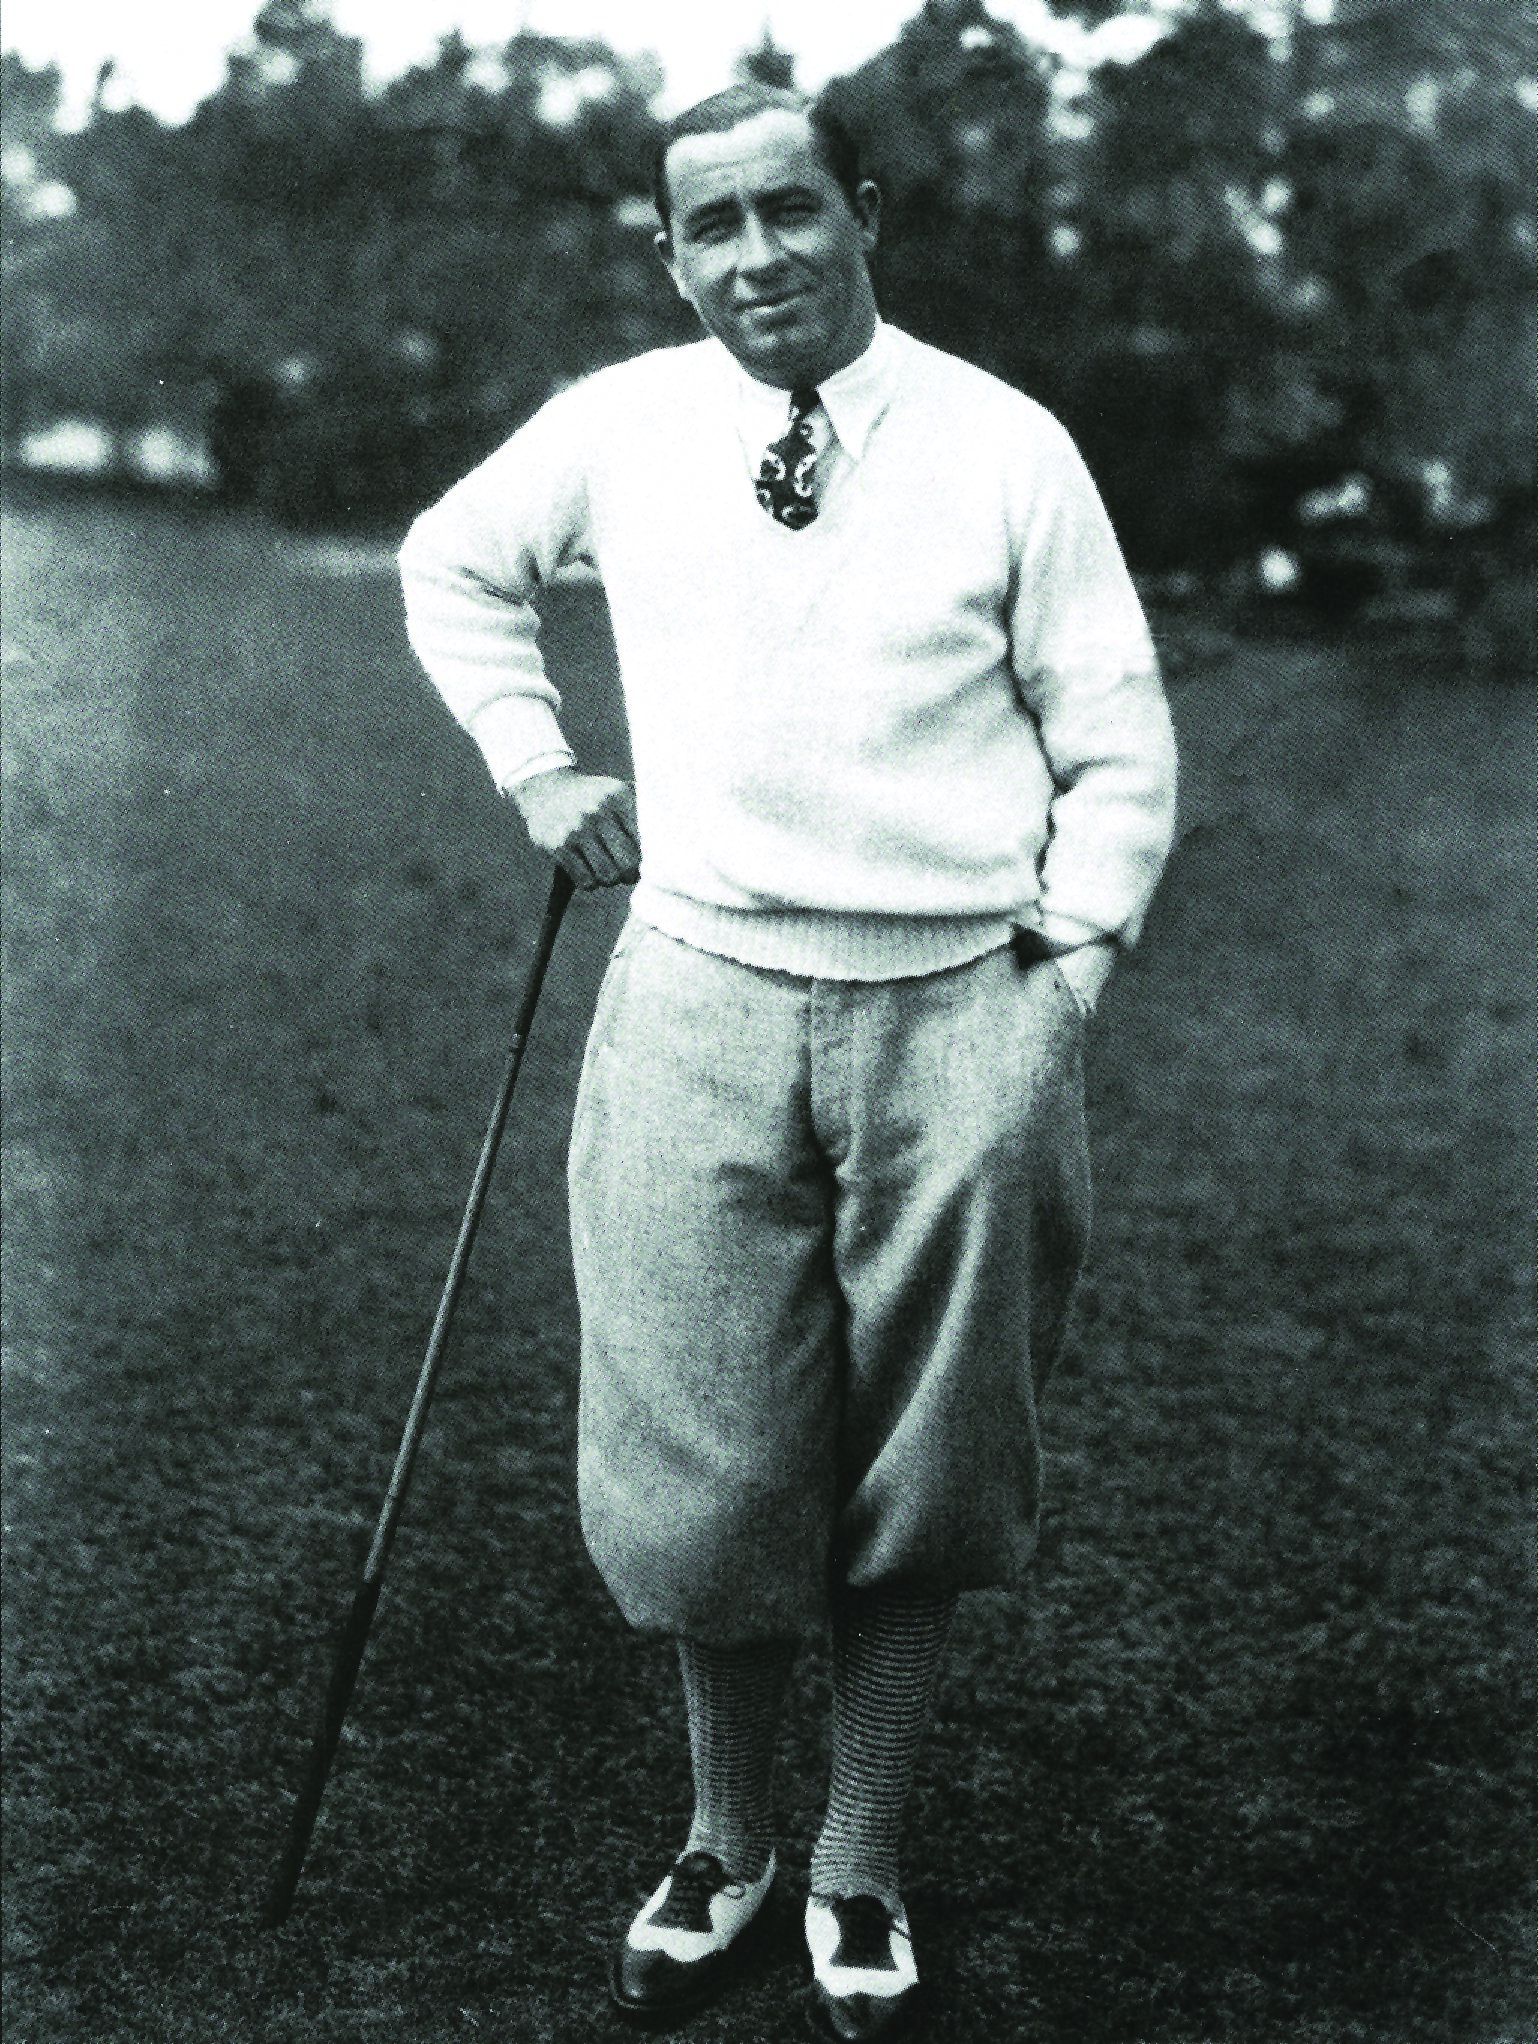 Golf Legend Walter Hagen won three times at Pinehurst. Photo courtesy of the Tufts Archives